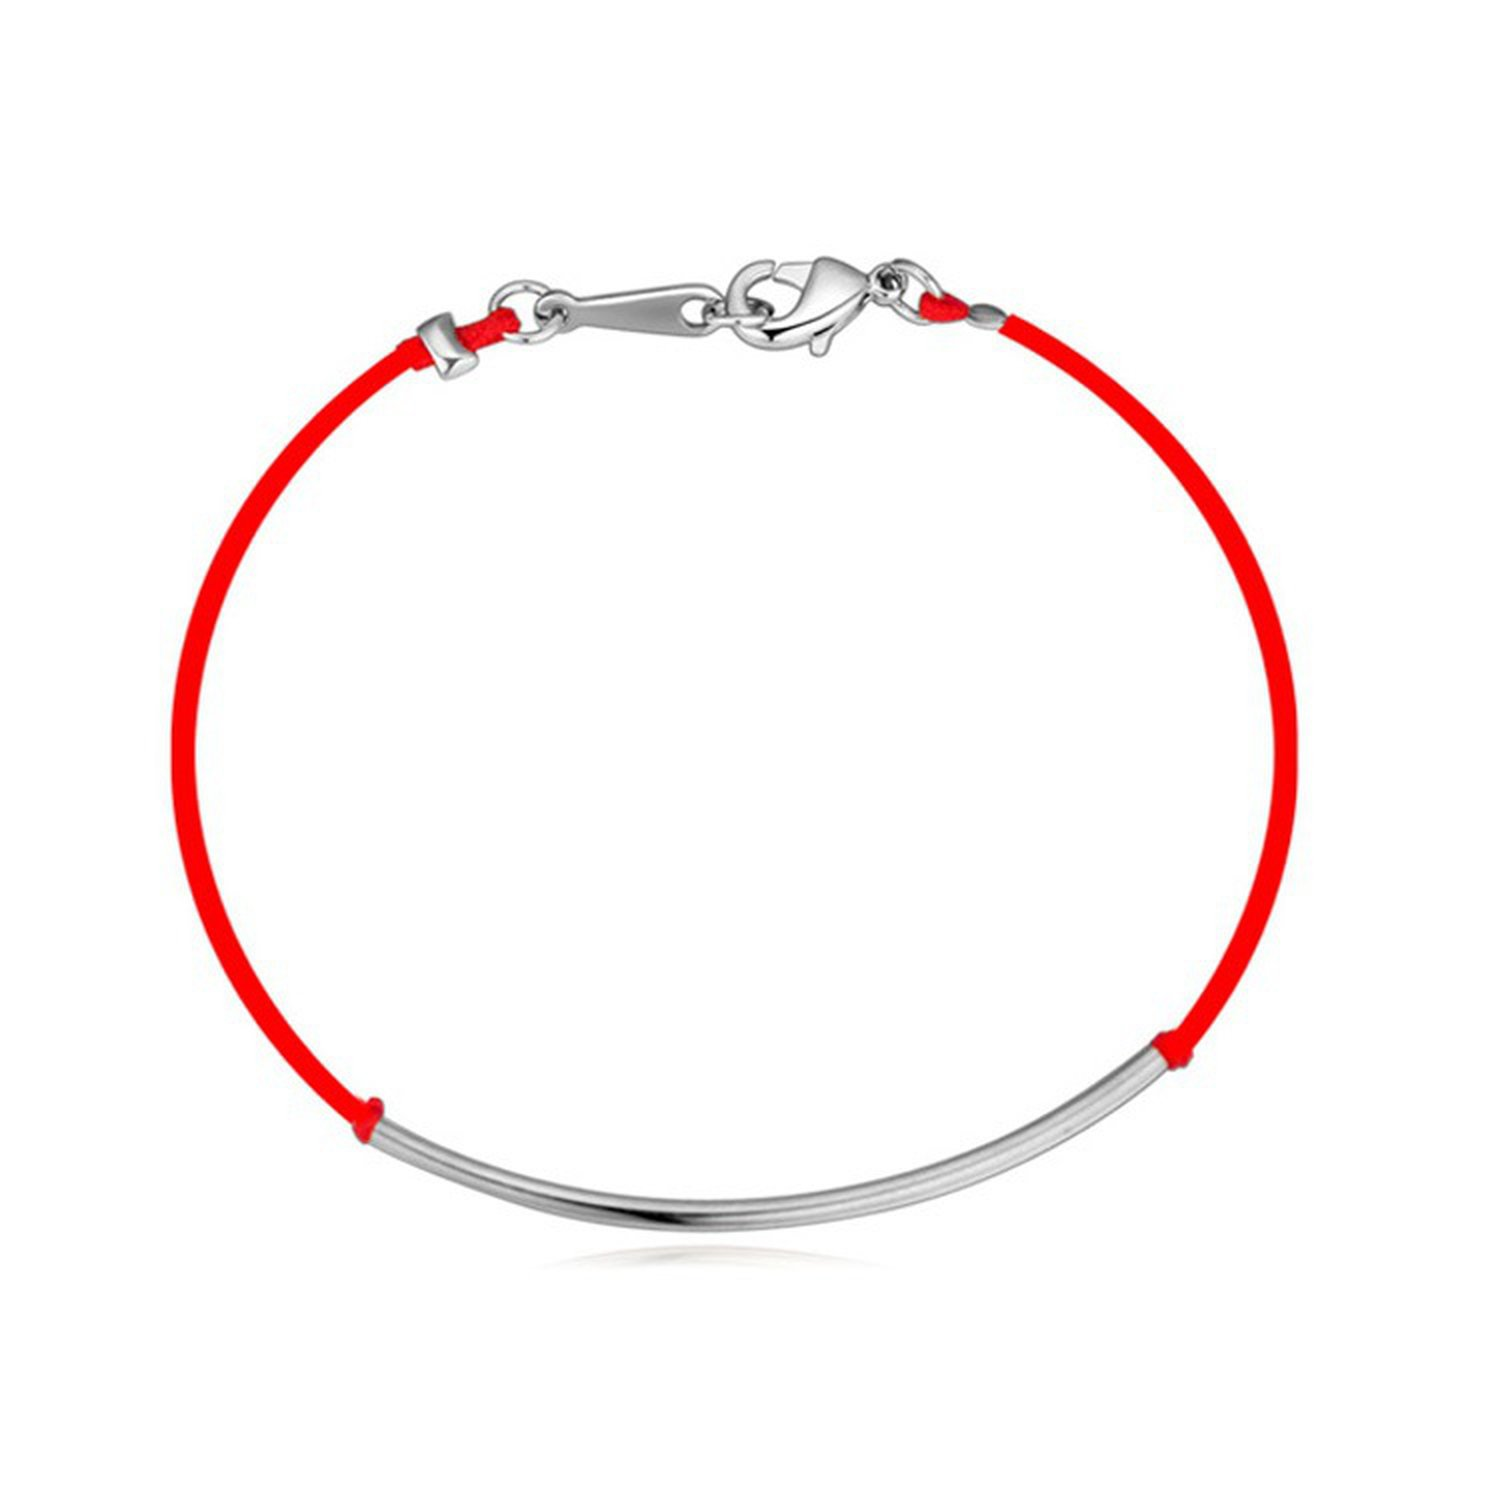 Flower-Bud born red rope braided bracelet high-end gold plated fine jewelry past and present Korean jewelry,Rose Gold by Flower-Bud (Image #2)